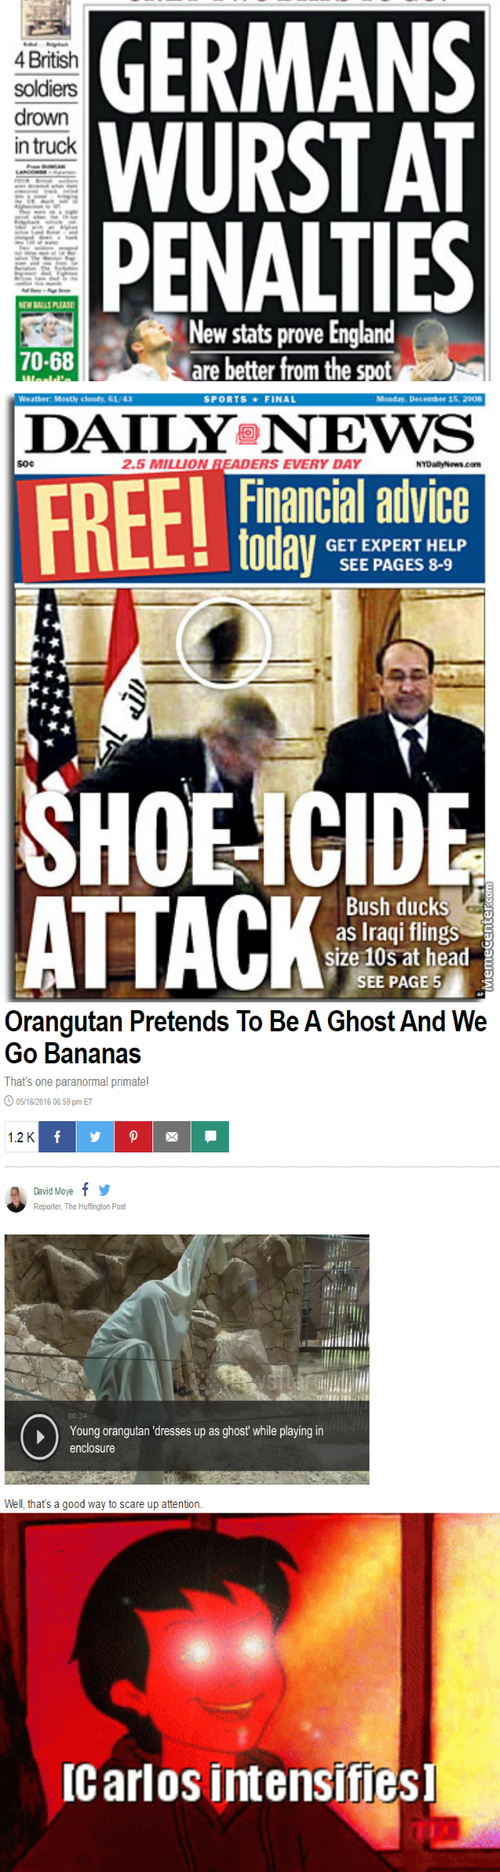 News With Puns, News With Puns Everywhere